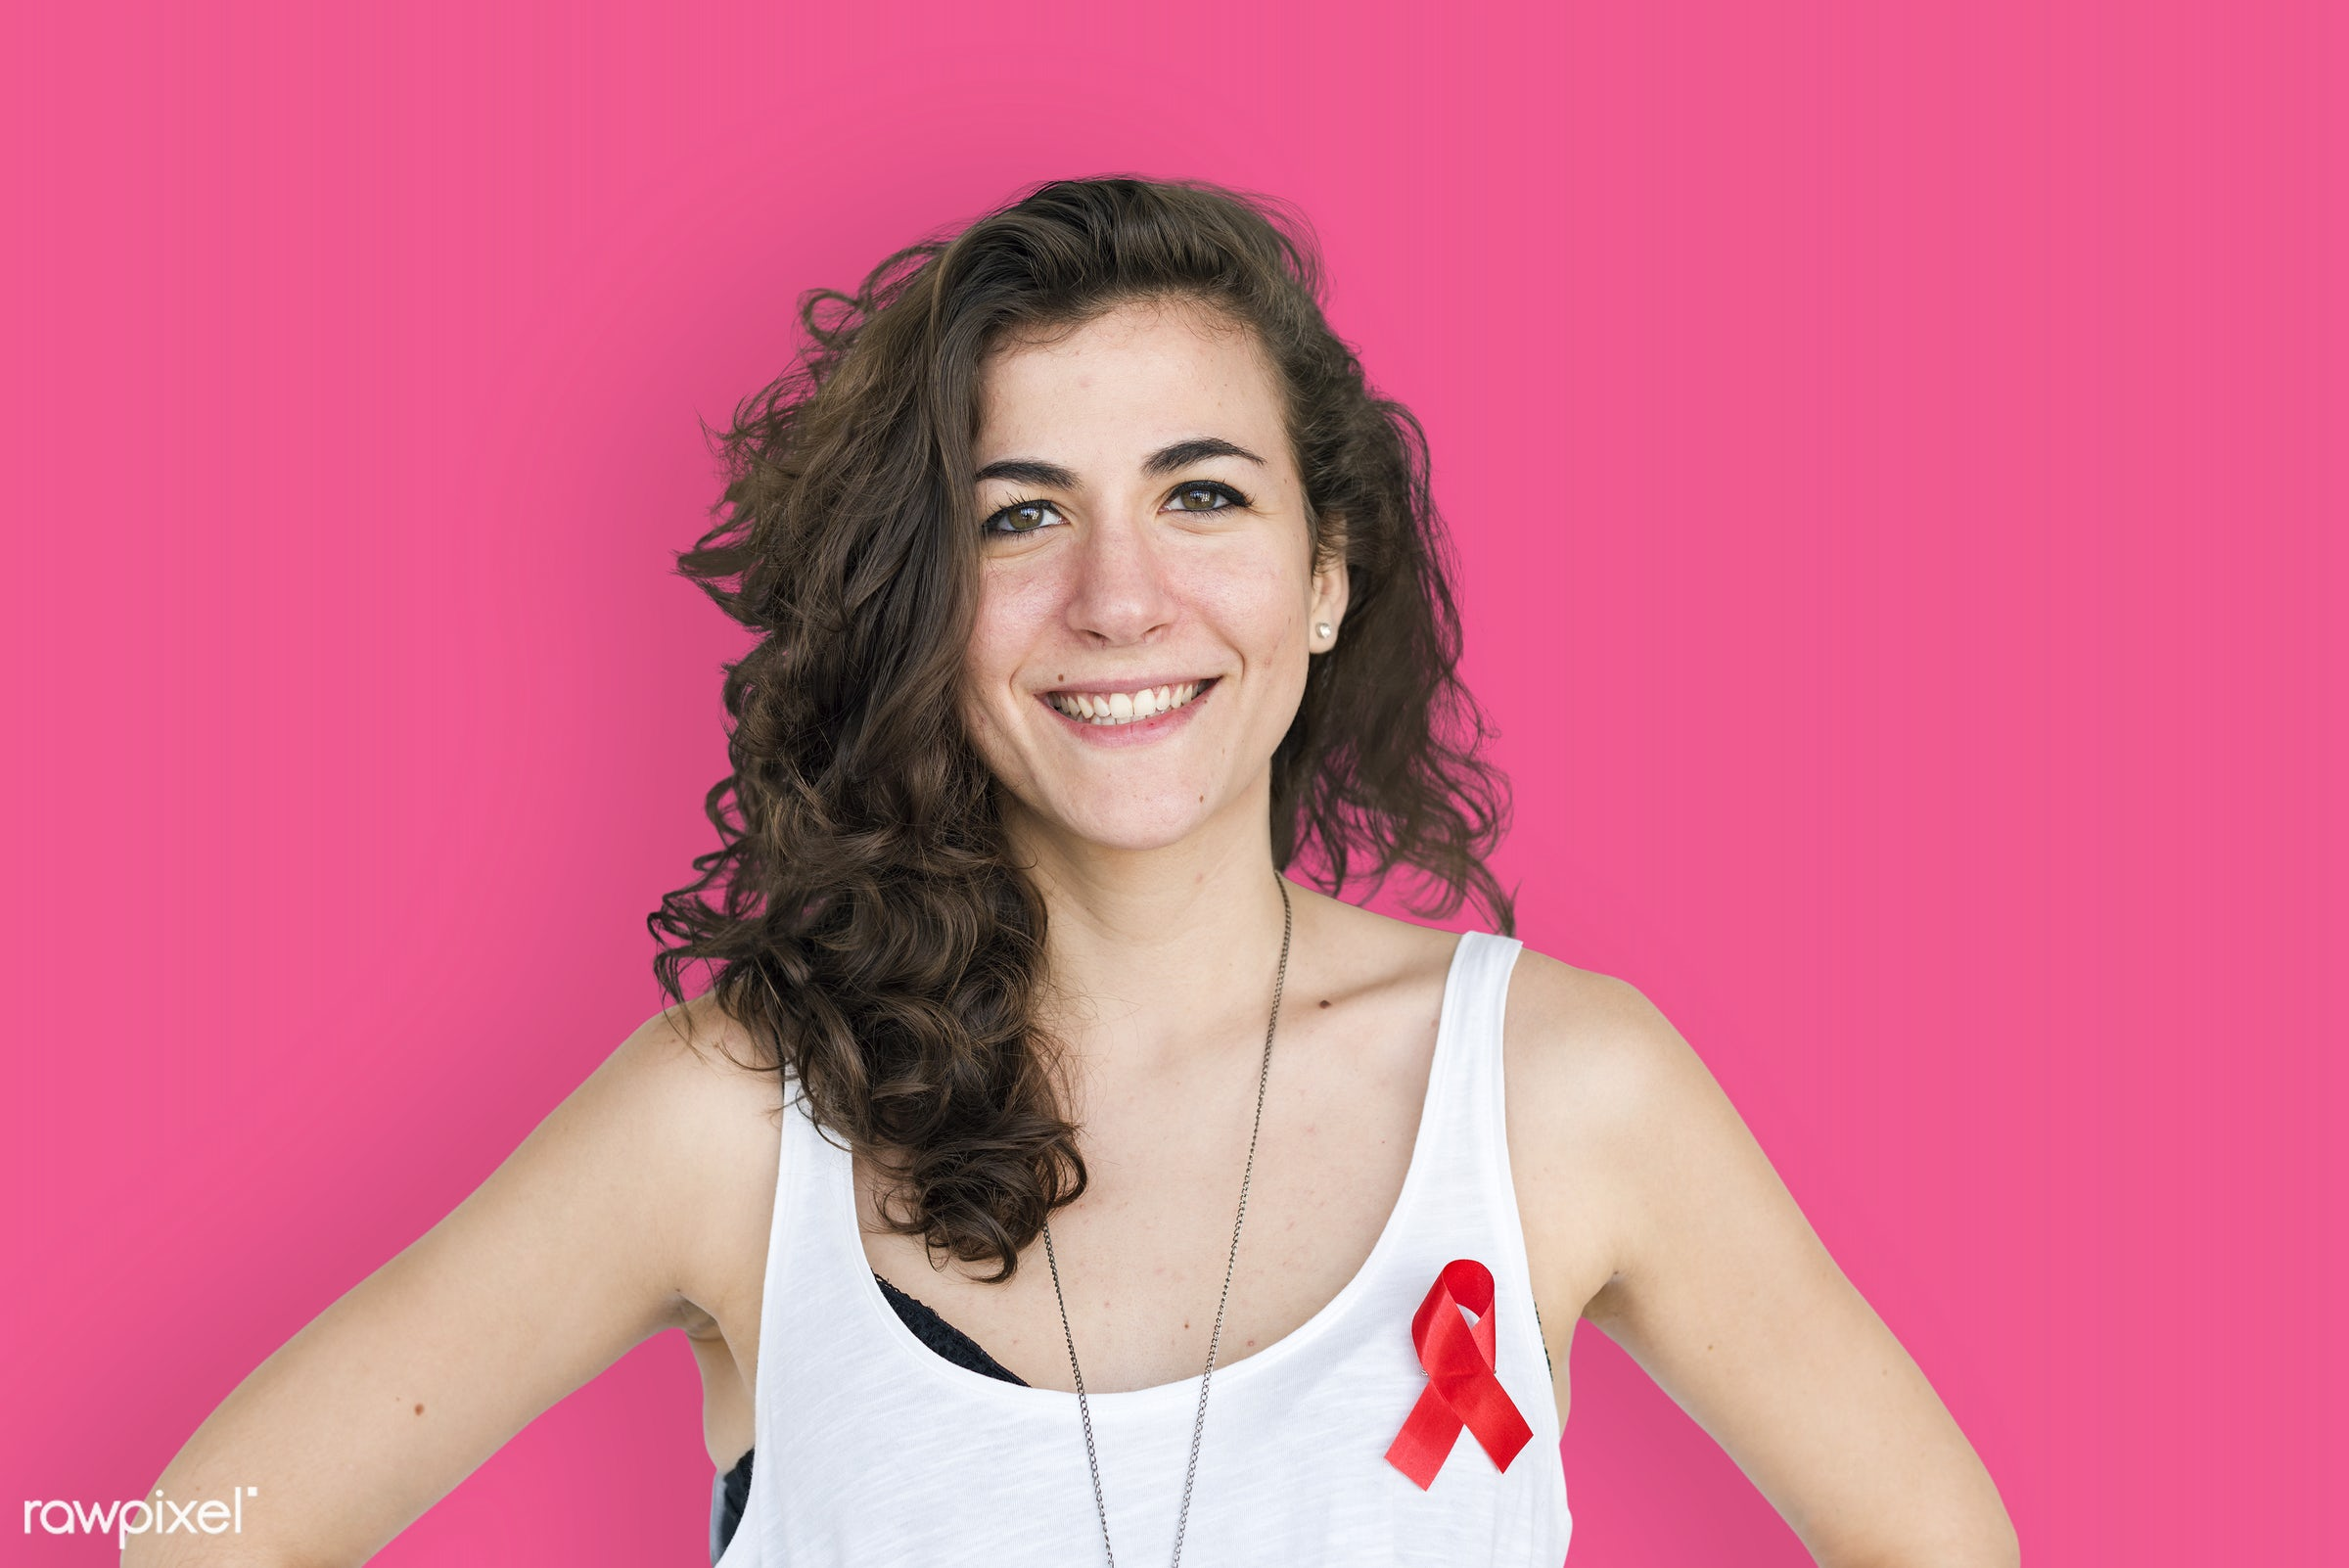 studio, expression, person, red ribbon, charity, people, hiv, solo, woman, ribbon, pink, smile, cheerful, smiling, isolated...